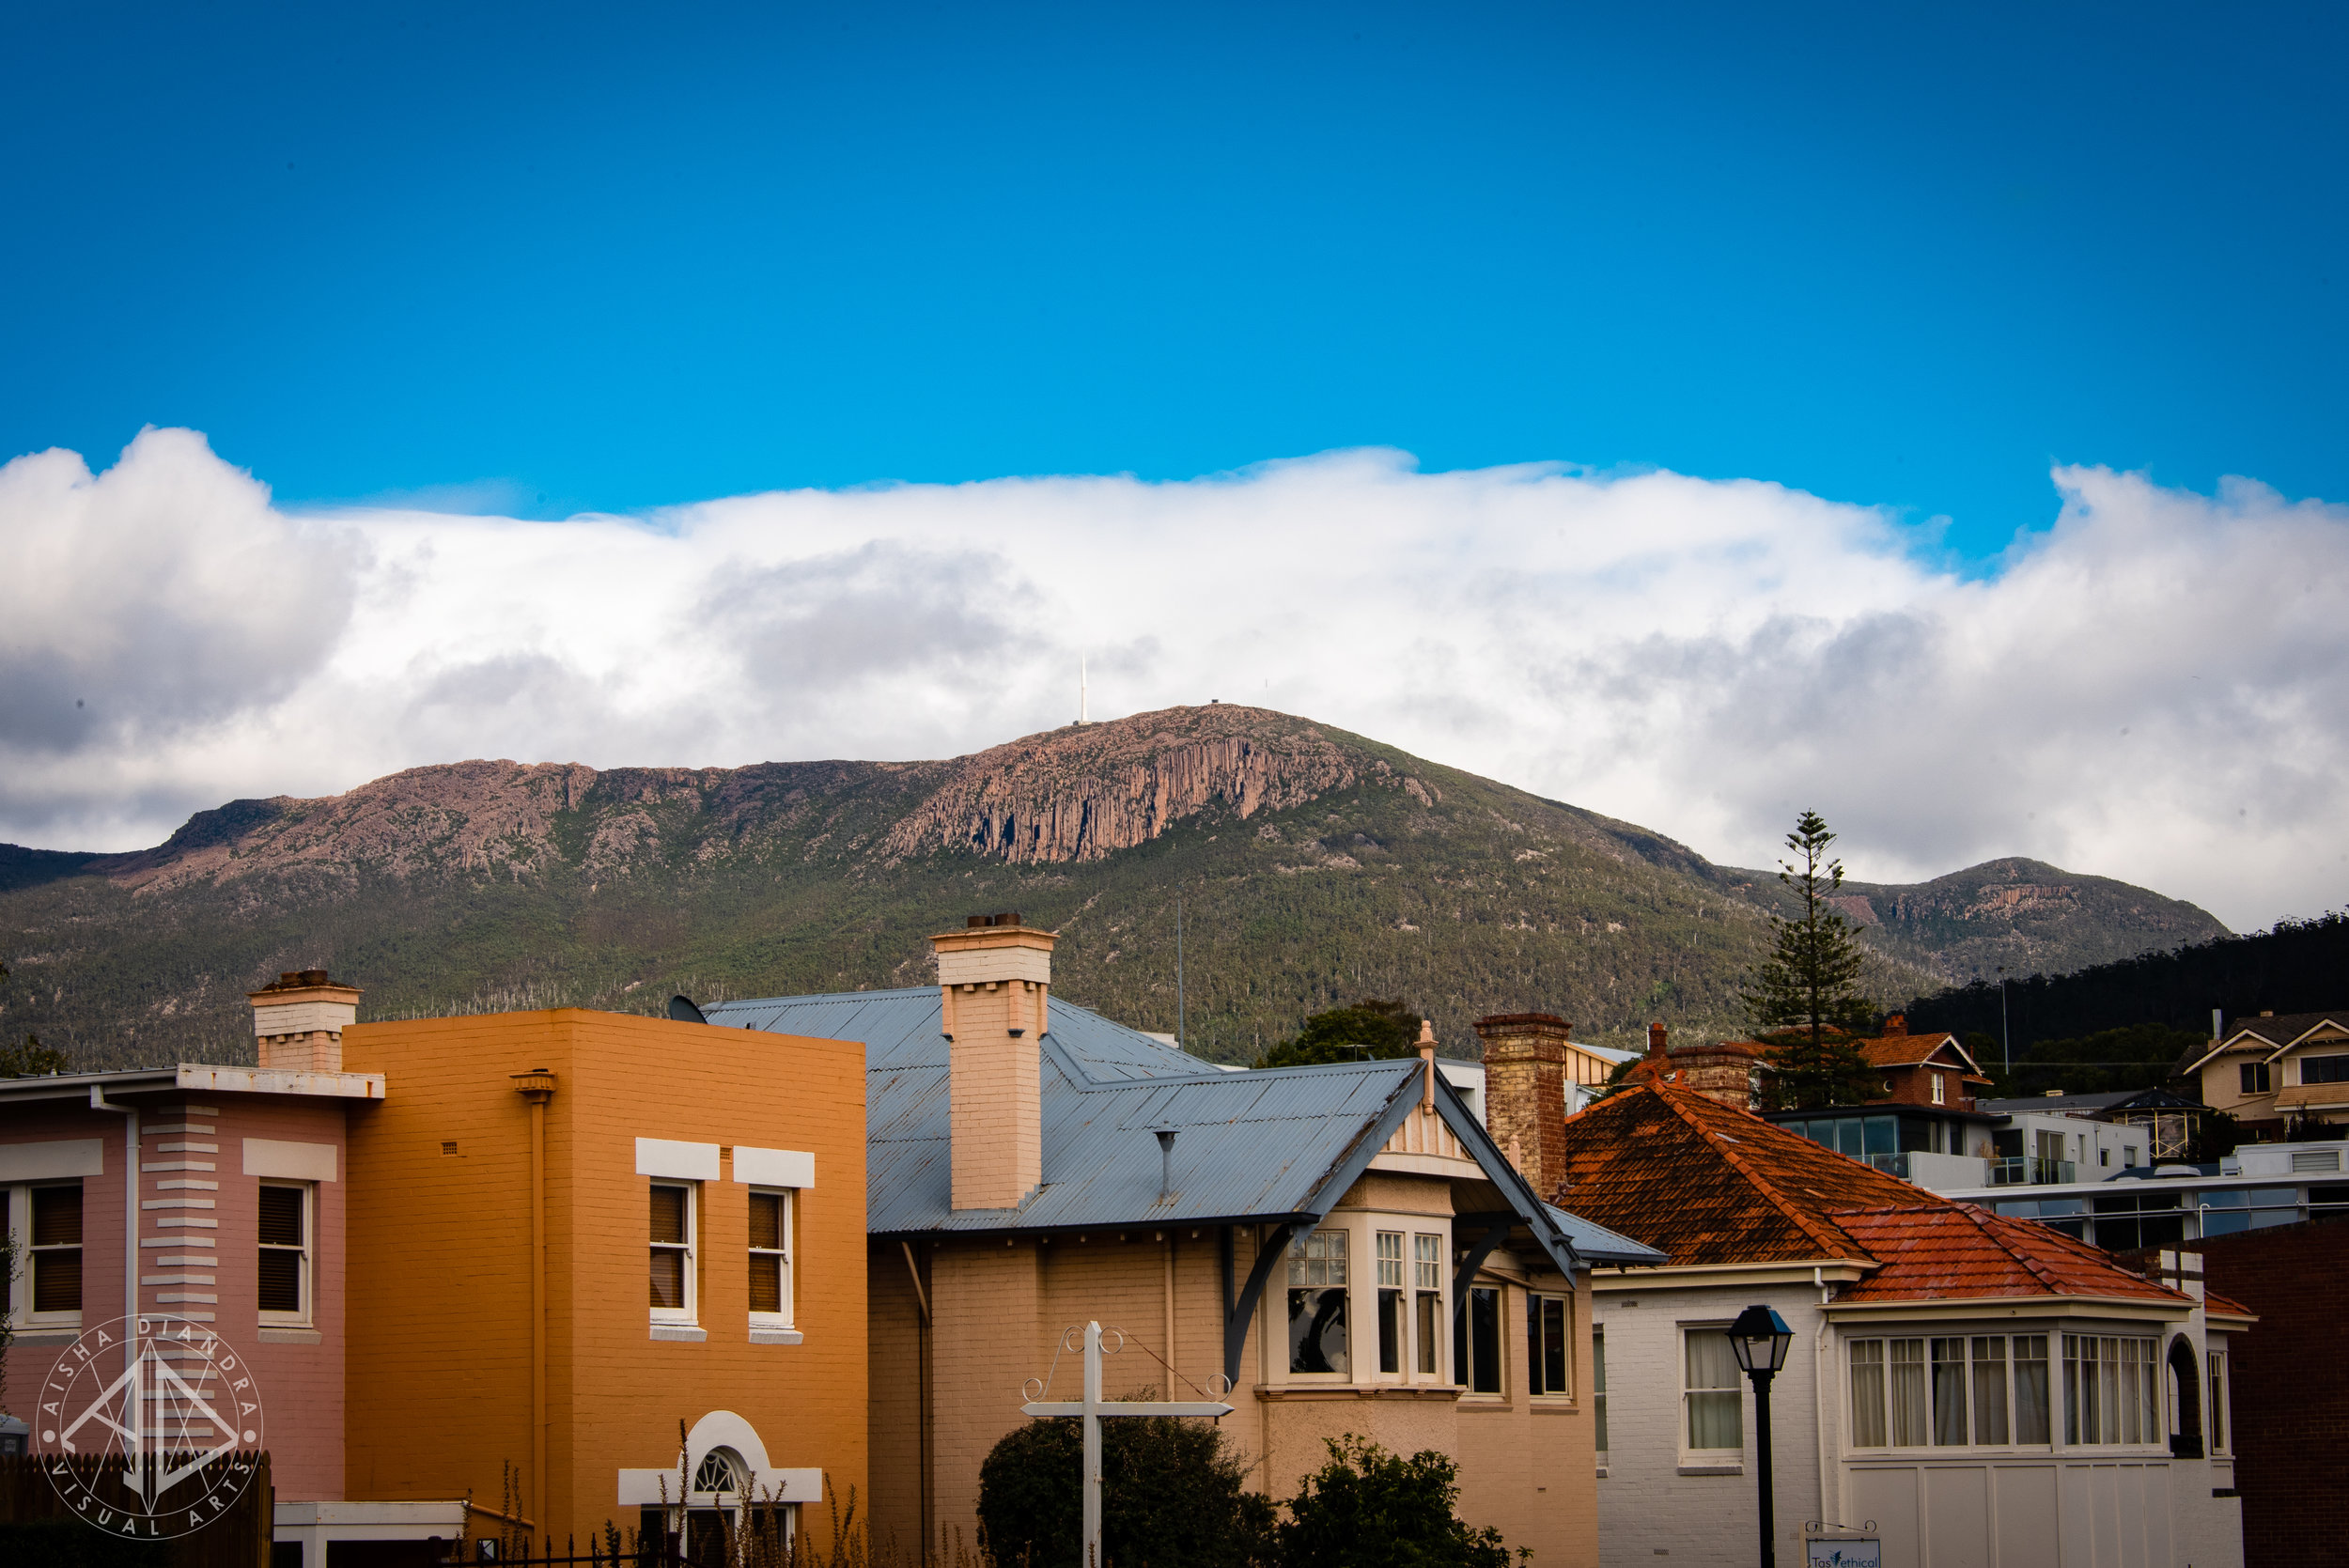 You can find this image of Hobart and more shots from around Hobart and Launceston in the  Cities + Adventures  gallery.